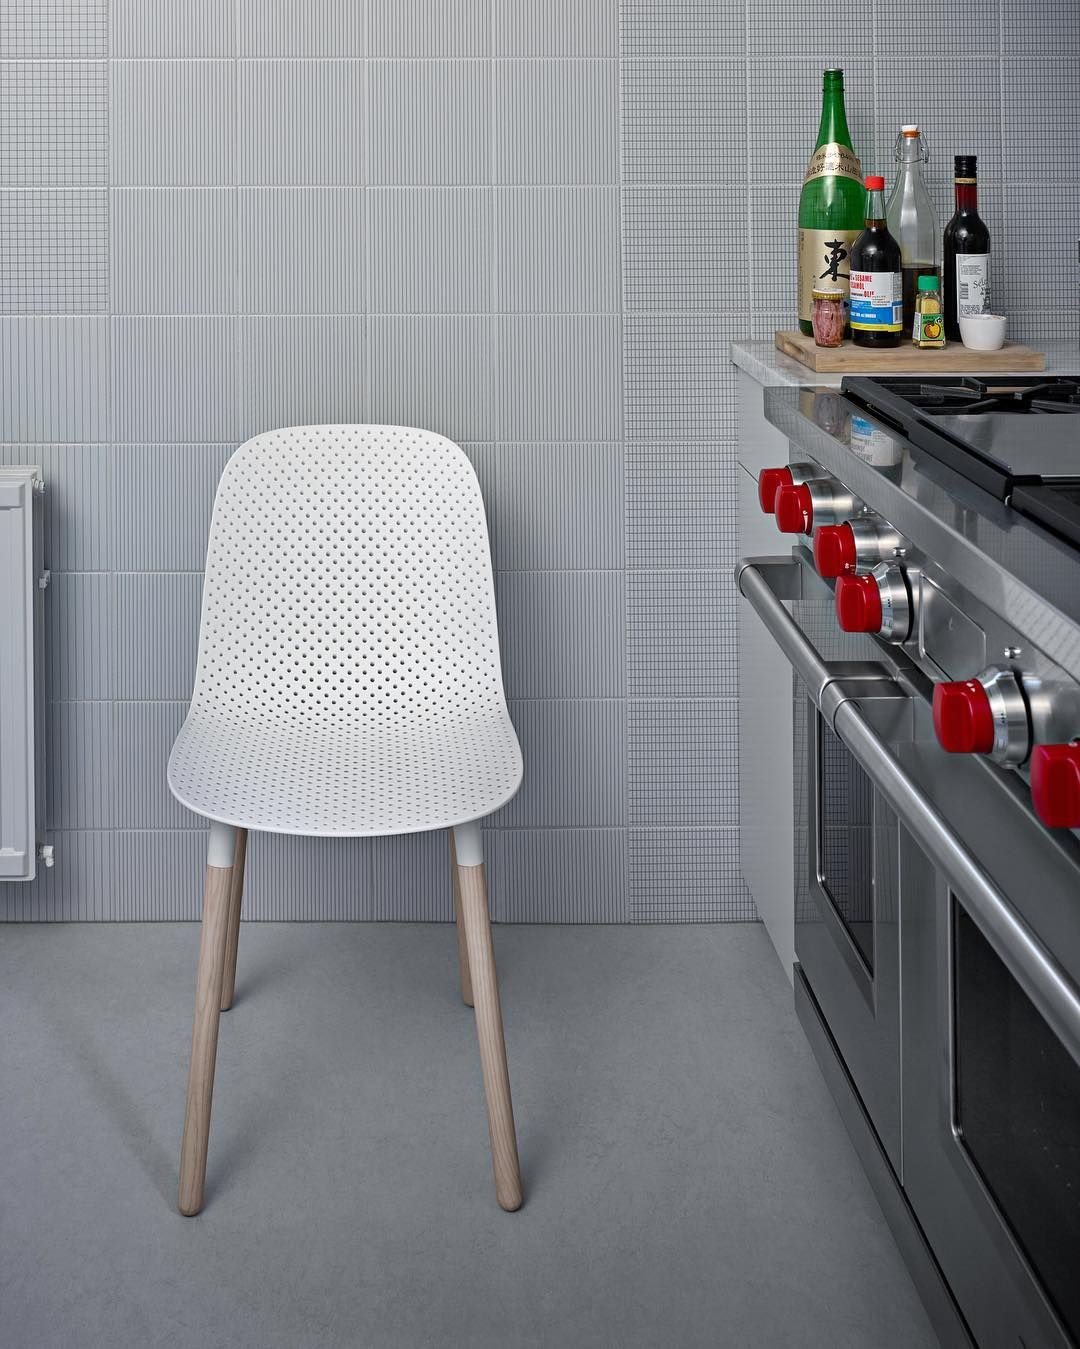 13Eighty chair by Scholten & Baijings for HAY